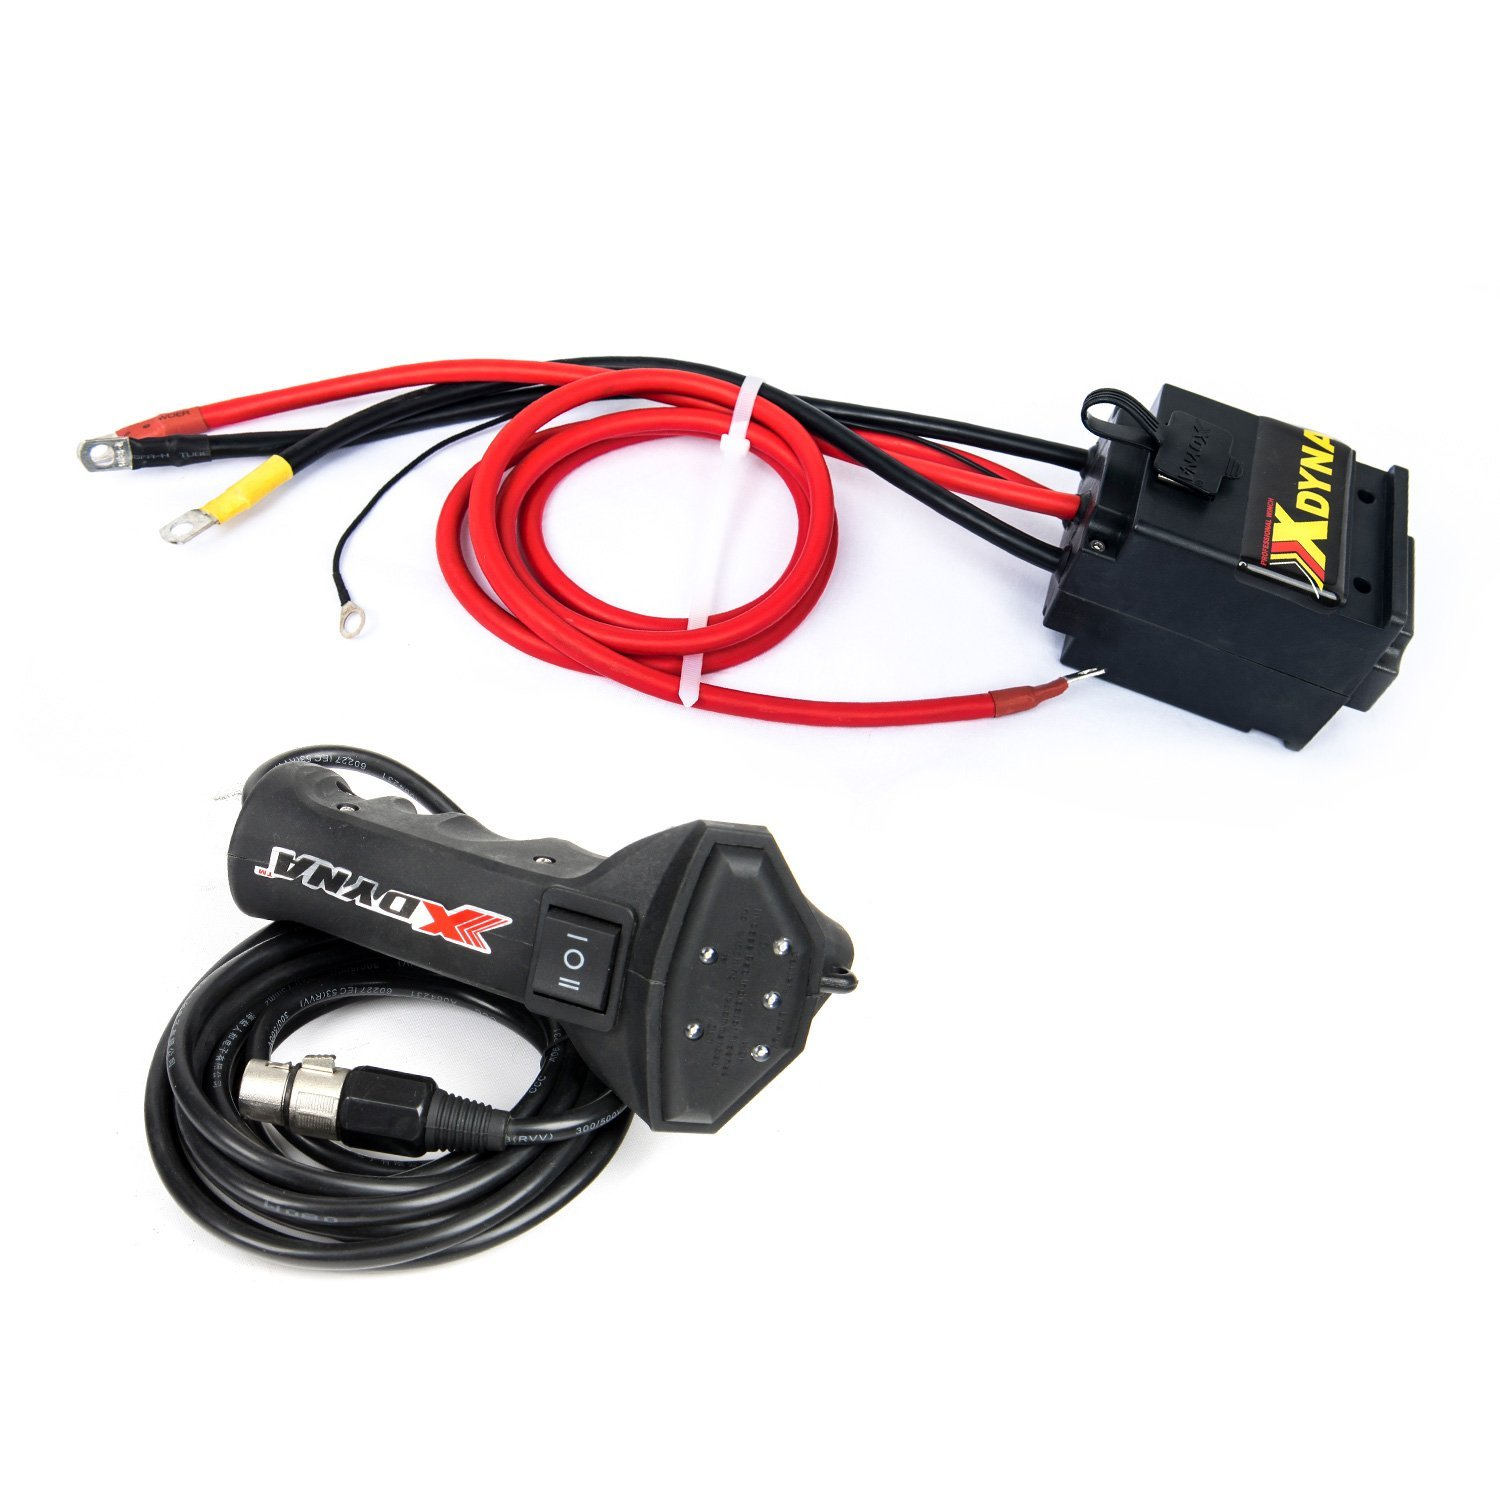 hight resolution of get quotations xdyna intelligent winch waterproof control box 12v 500a handlebar switch showing load